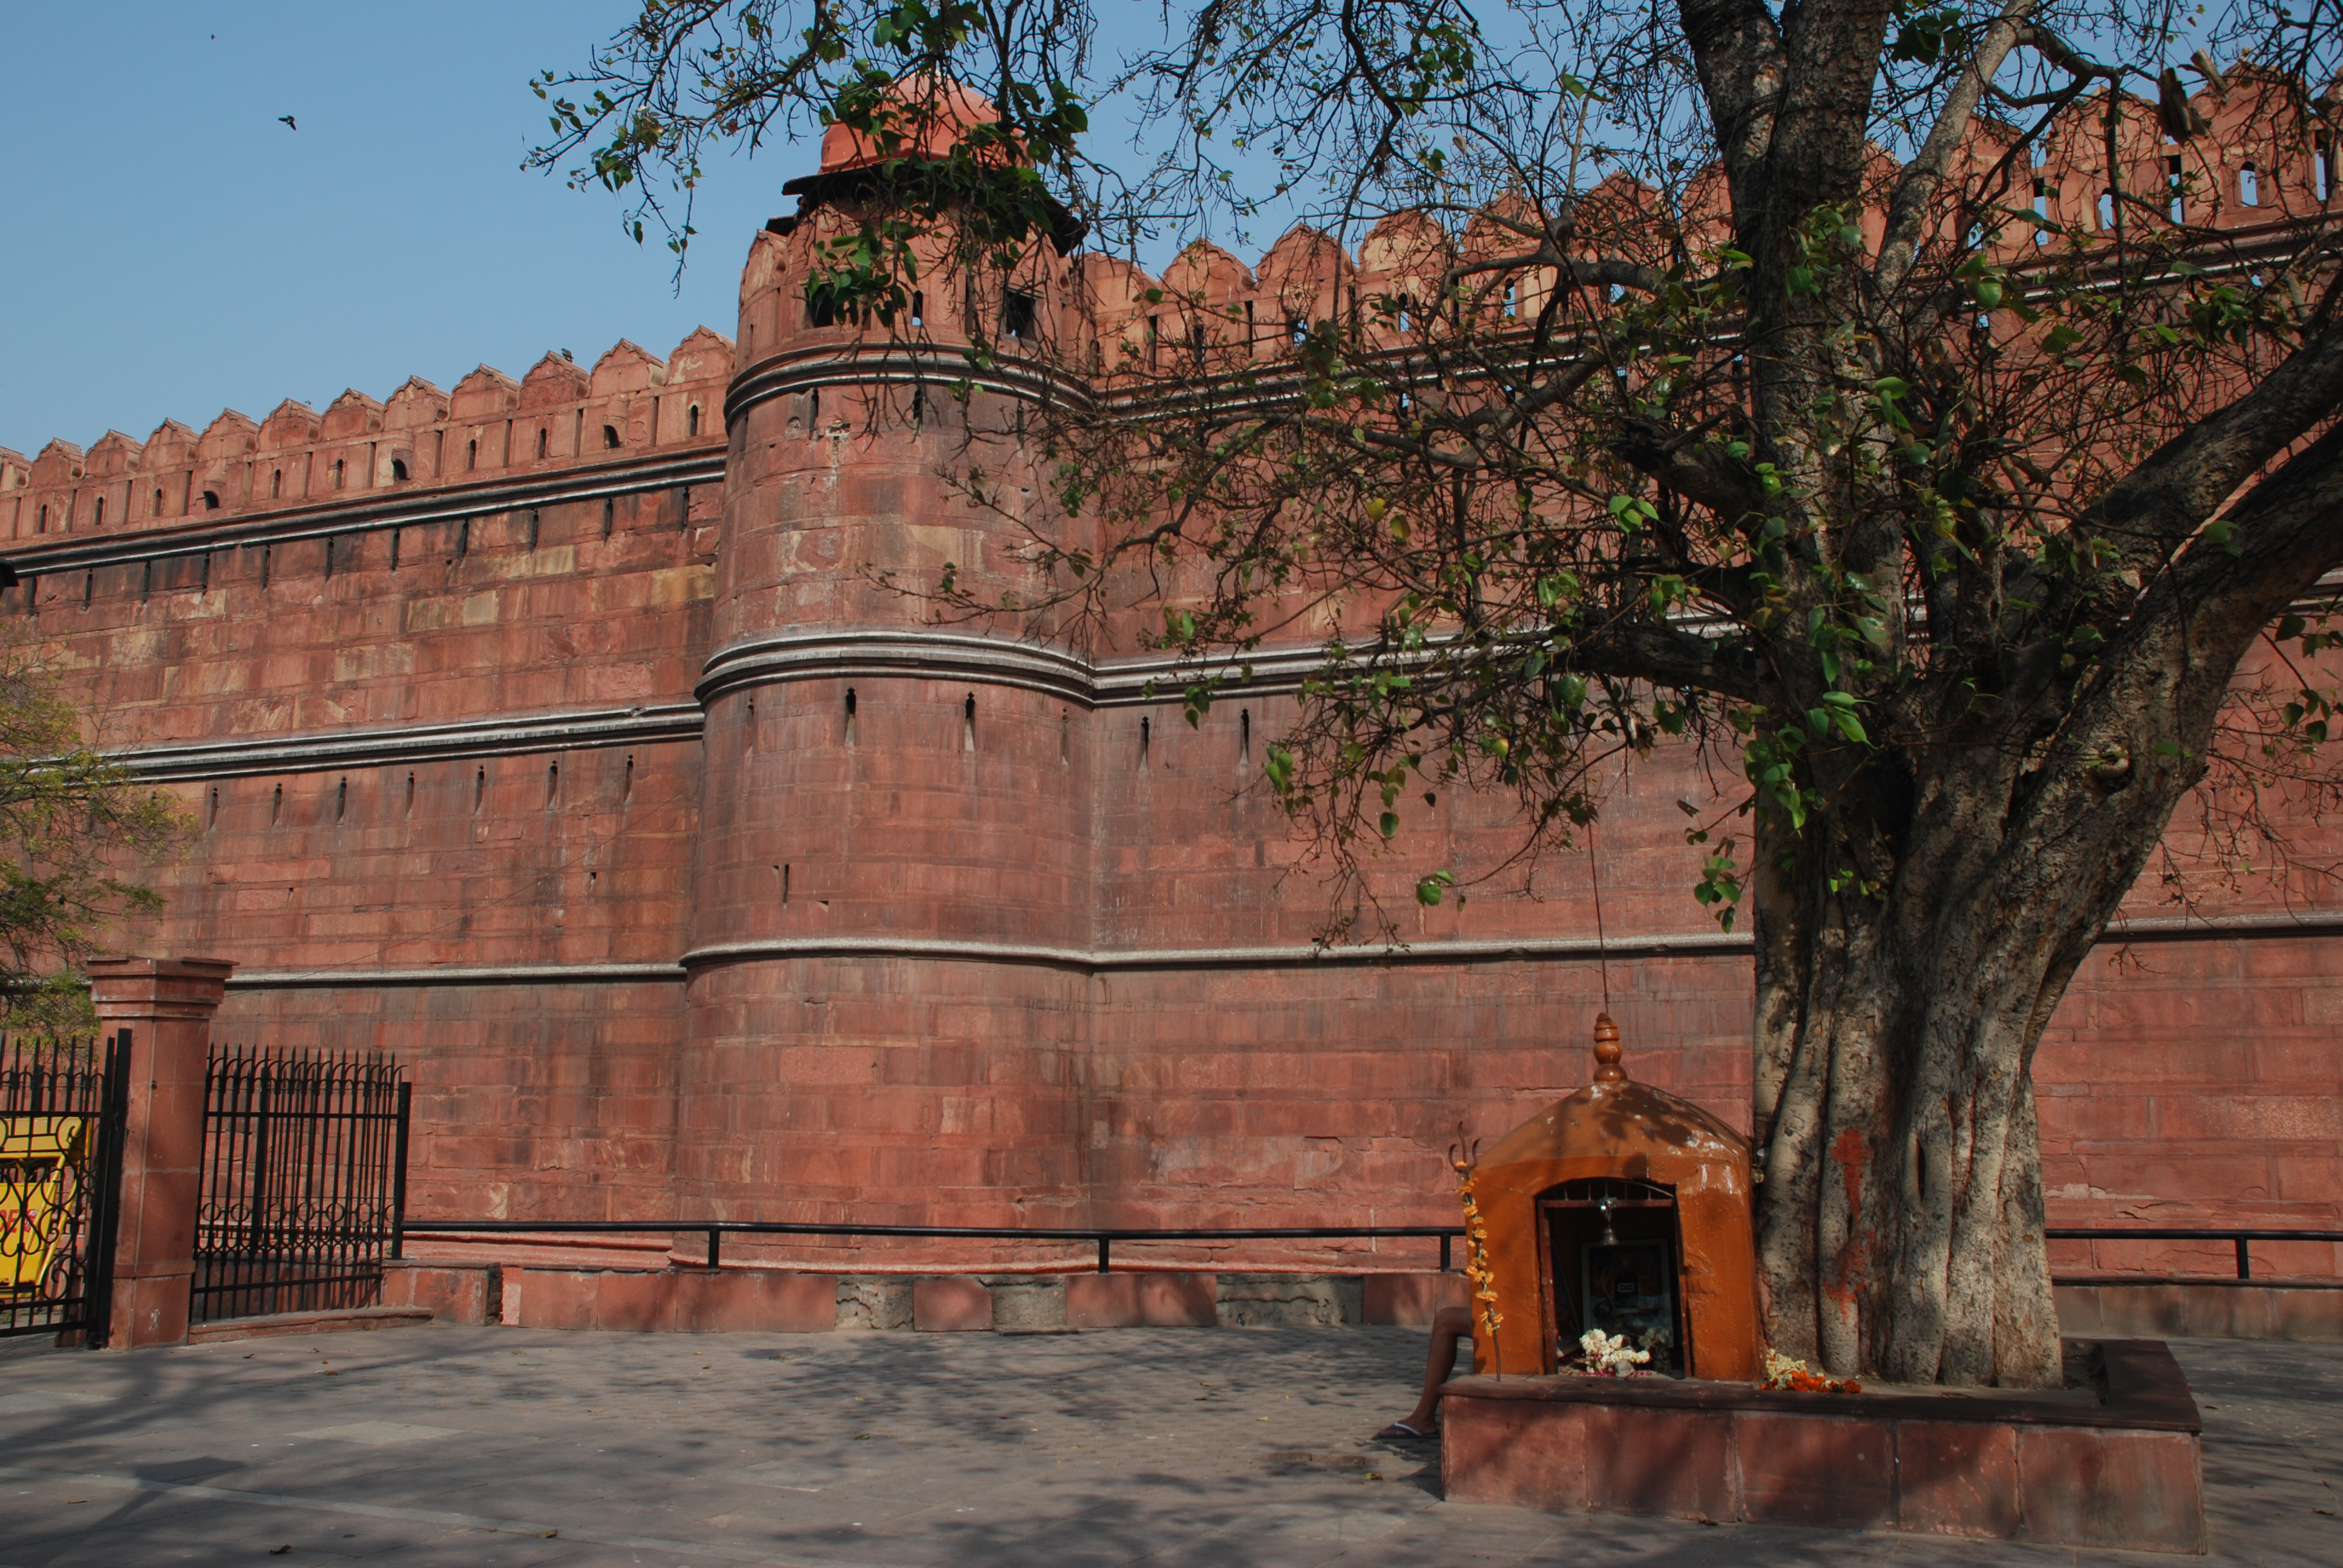 The red walls of the fort